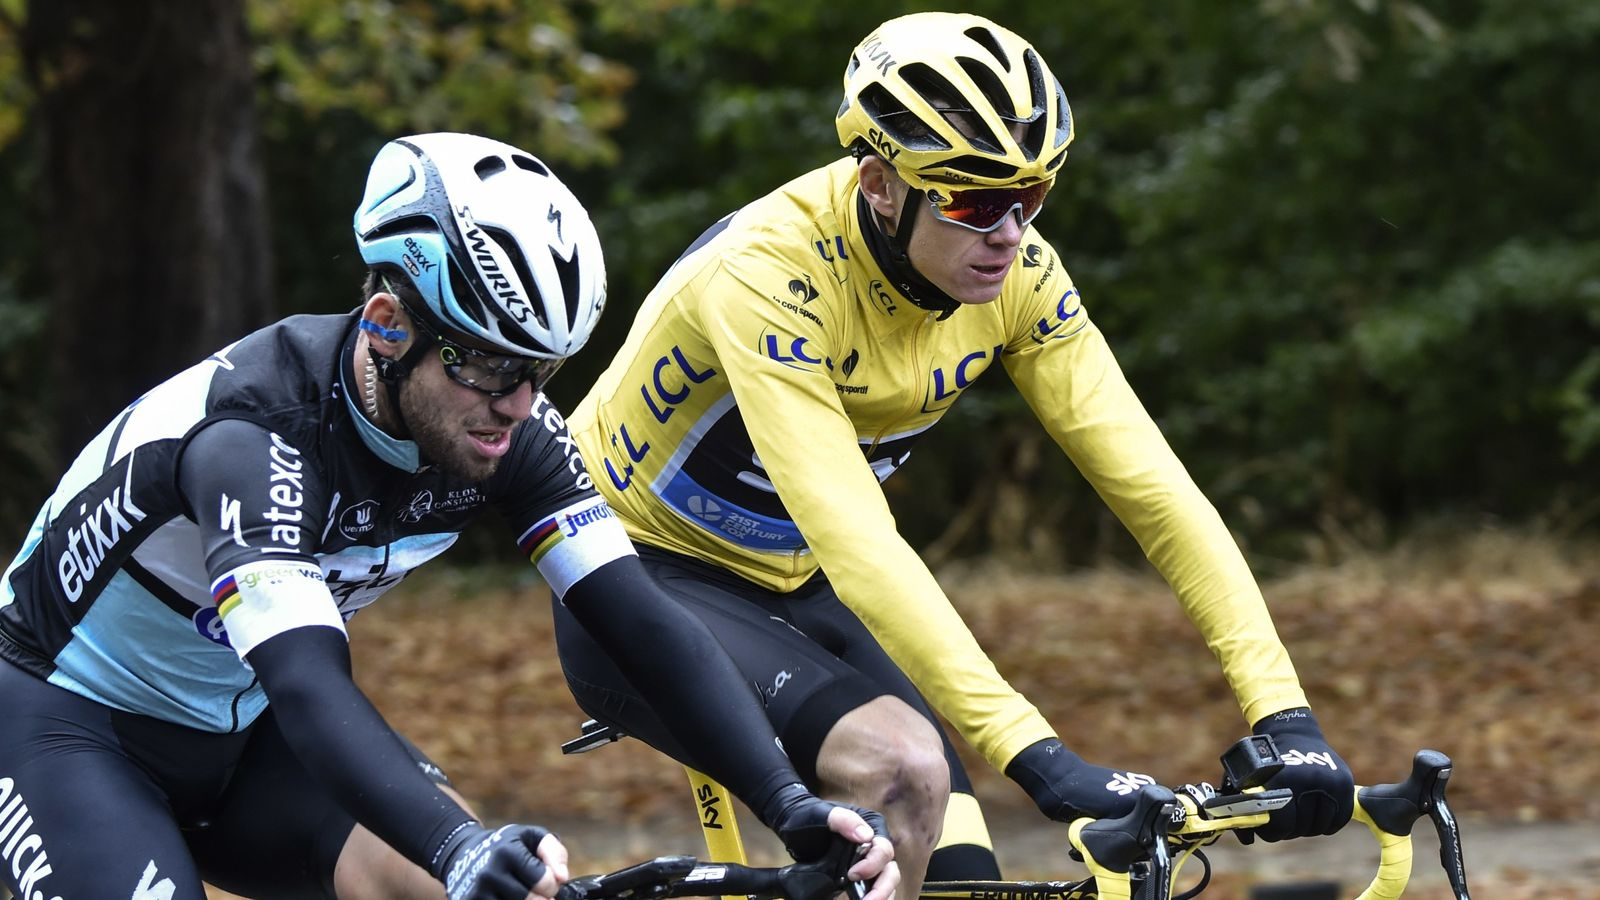 Coronavirus: British cycling stars Chris Froome and Mark Cavendish tested for COVID-19